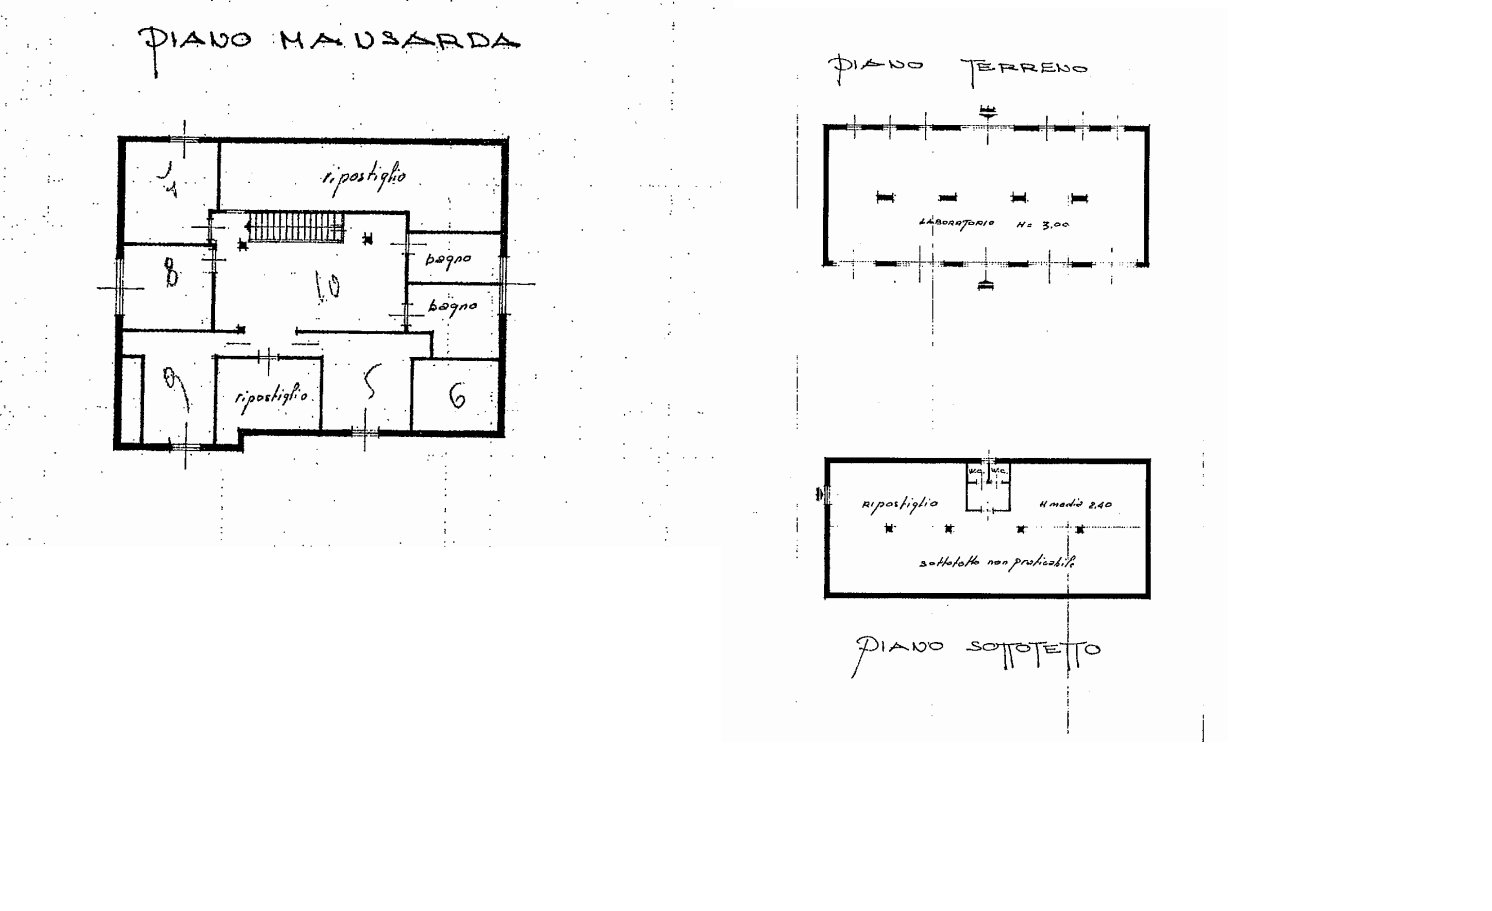 Proprietà in vendita ad Arona - floor plan B